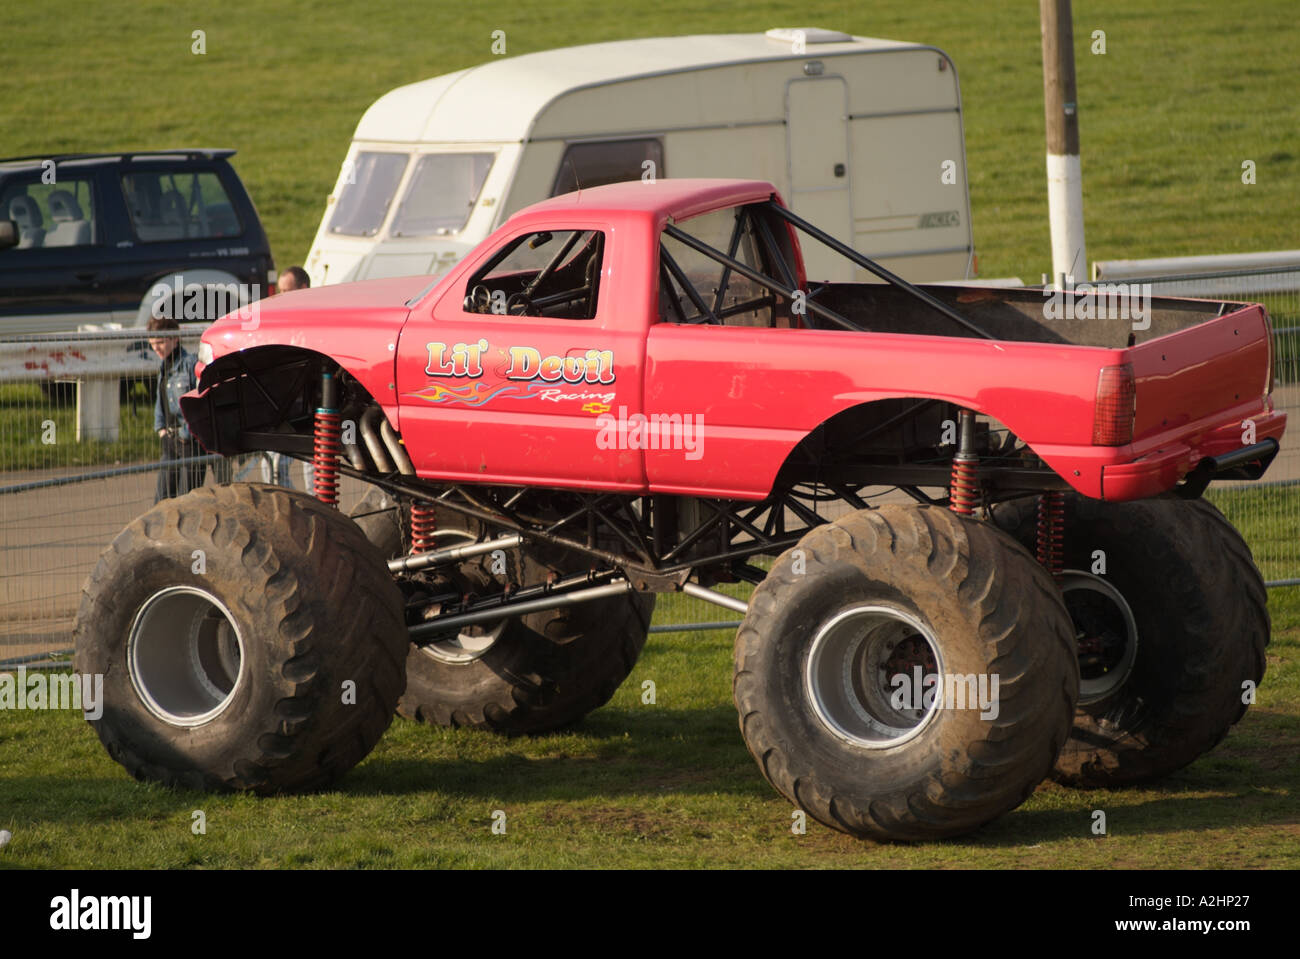 Suv Monster Truck Pick Up Truck Pickup Suburban Utility Vehicle Stock Photo Alamy